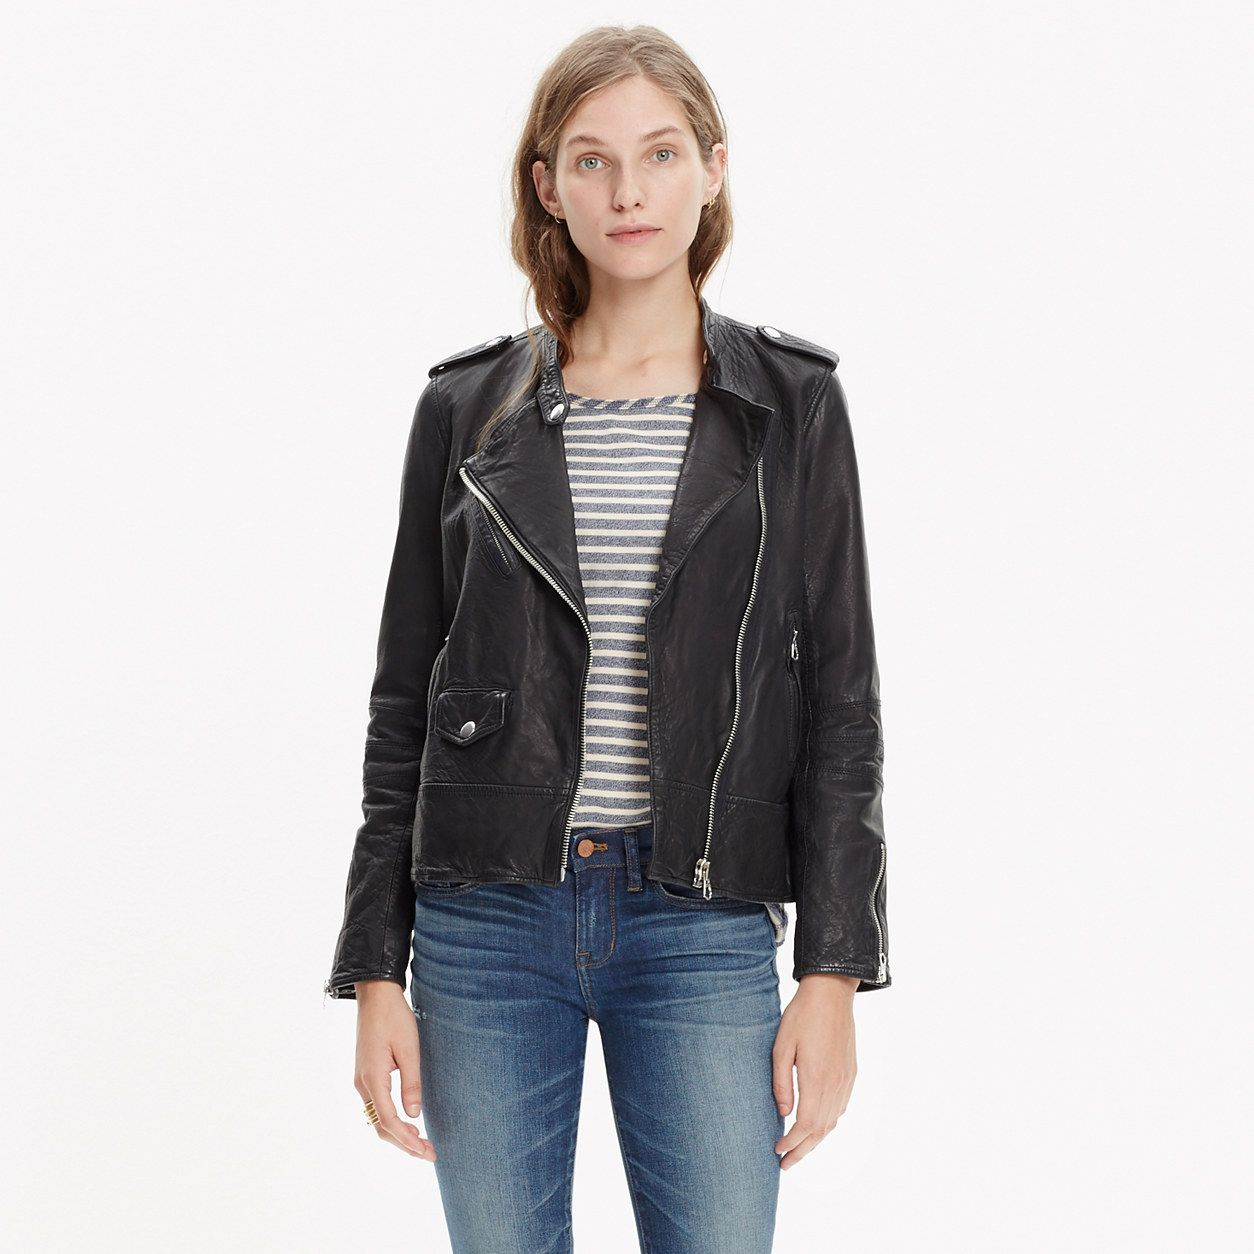 buying cheap details for another chance Washed Leather Motorcycle Jacket | Jackets, Clothes, Leather jacket